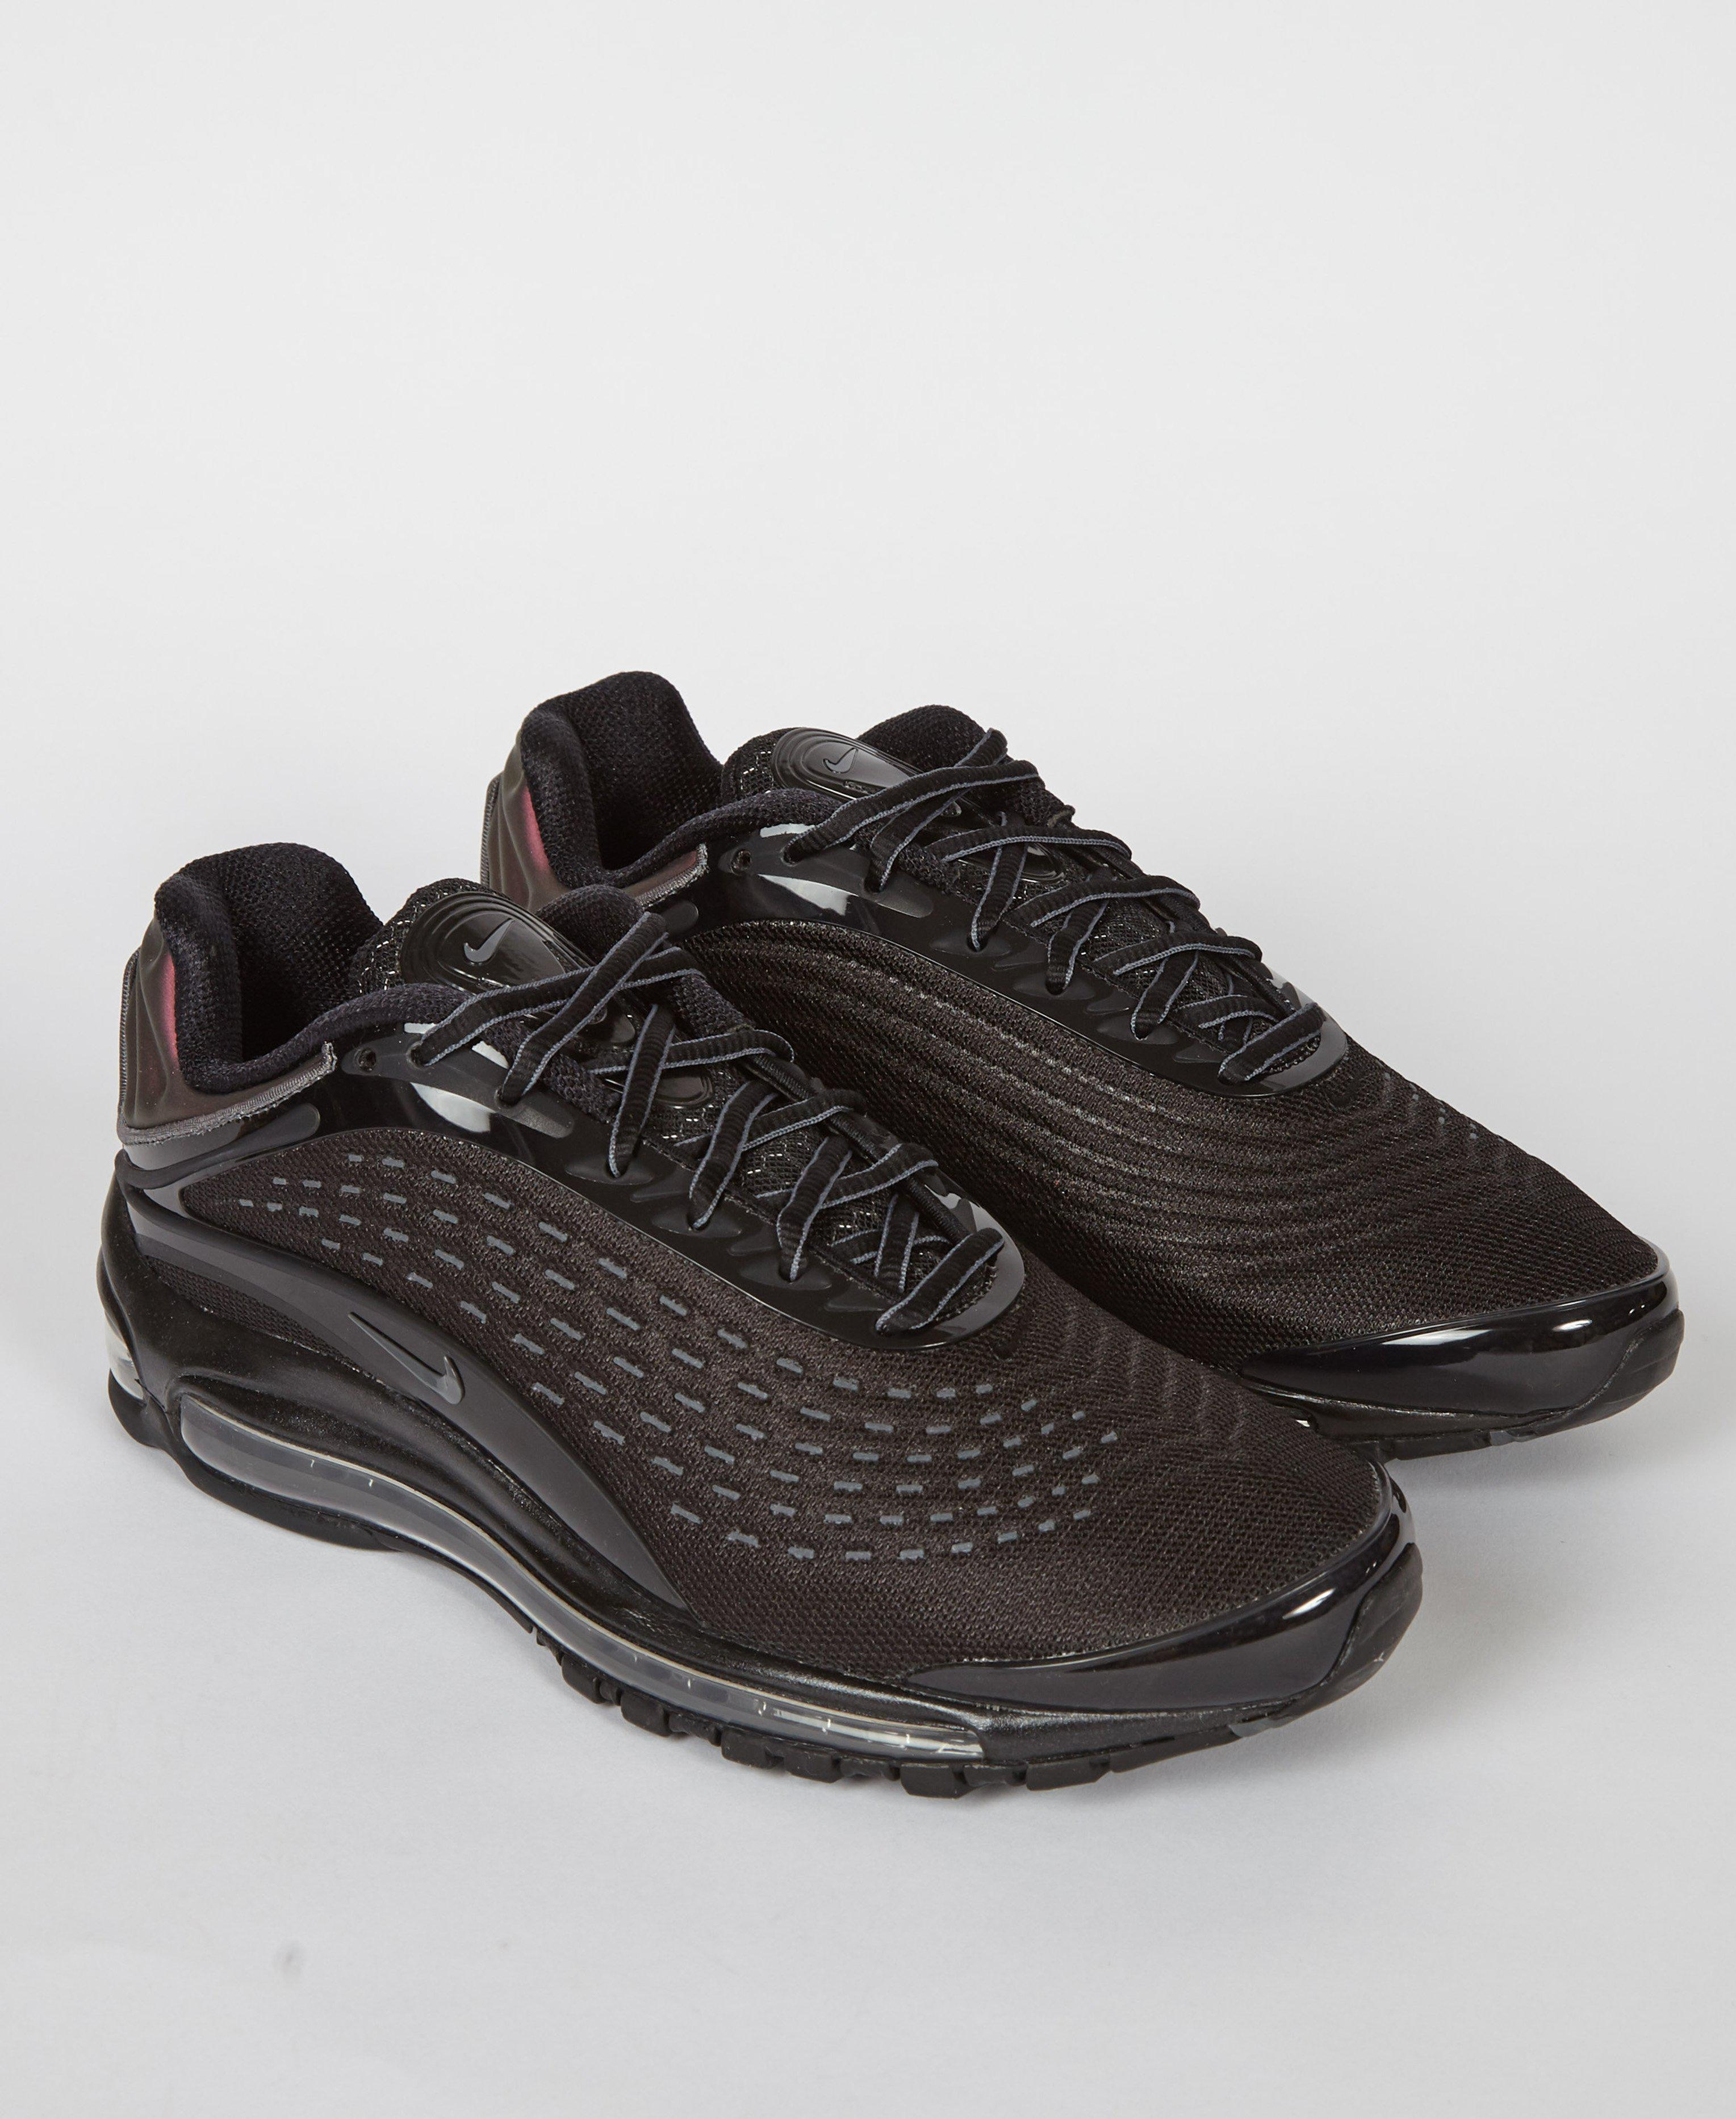 a3d95583627 Nike Air Max Deluxe  triple Black  in Black for Men - Lyst